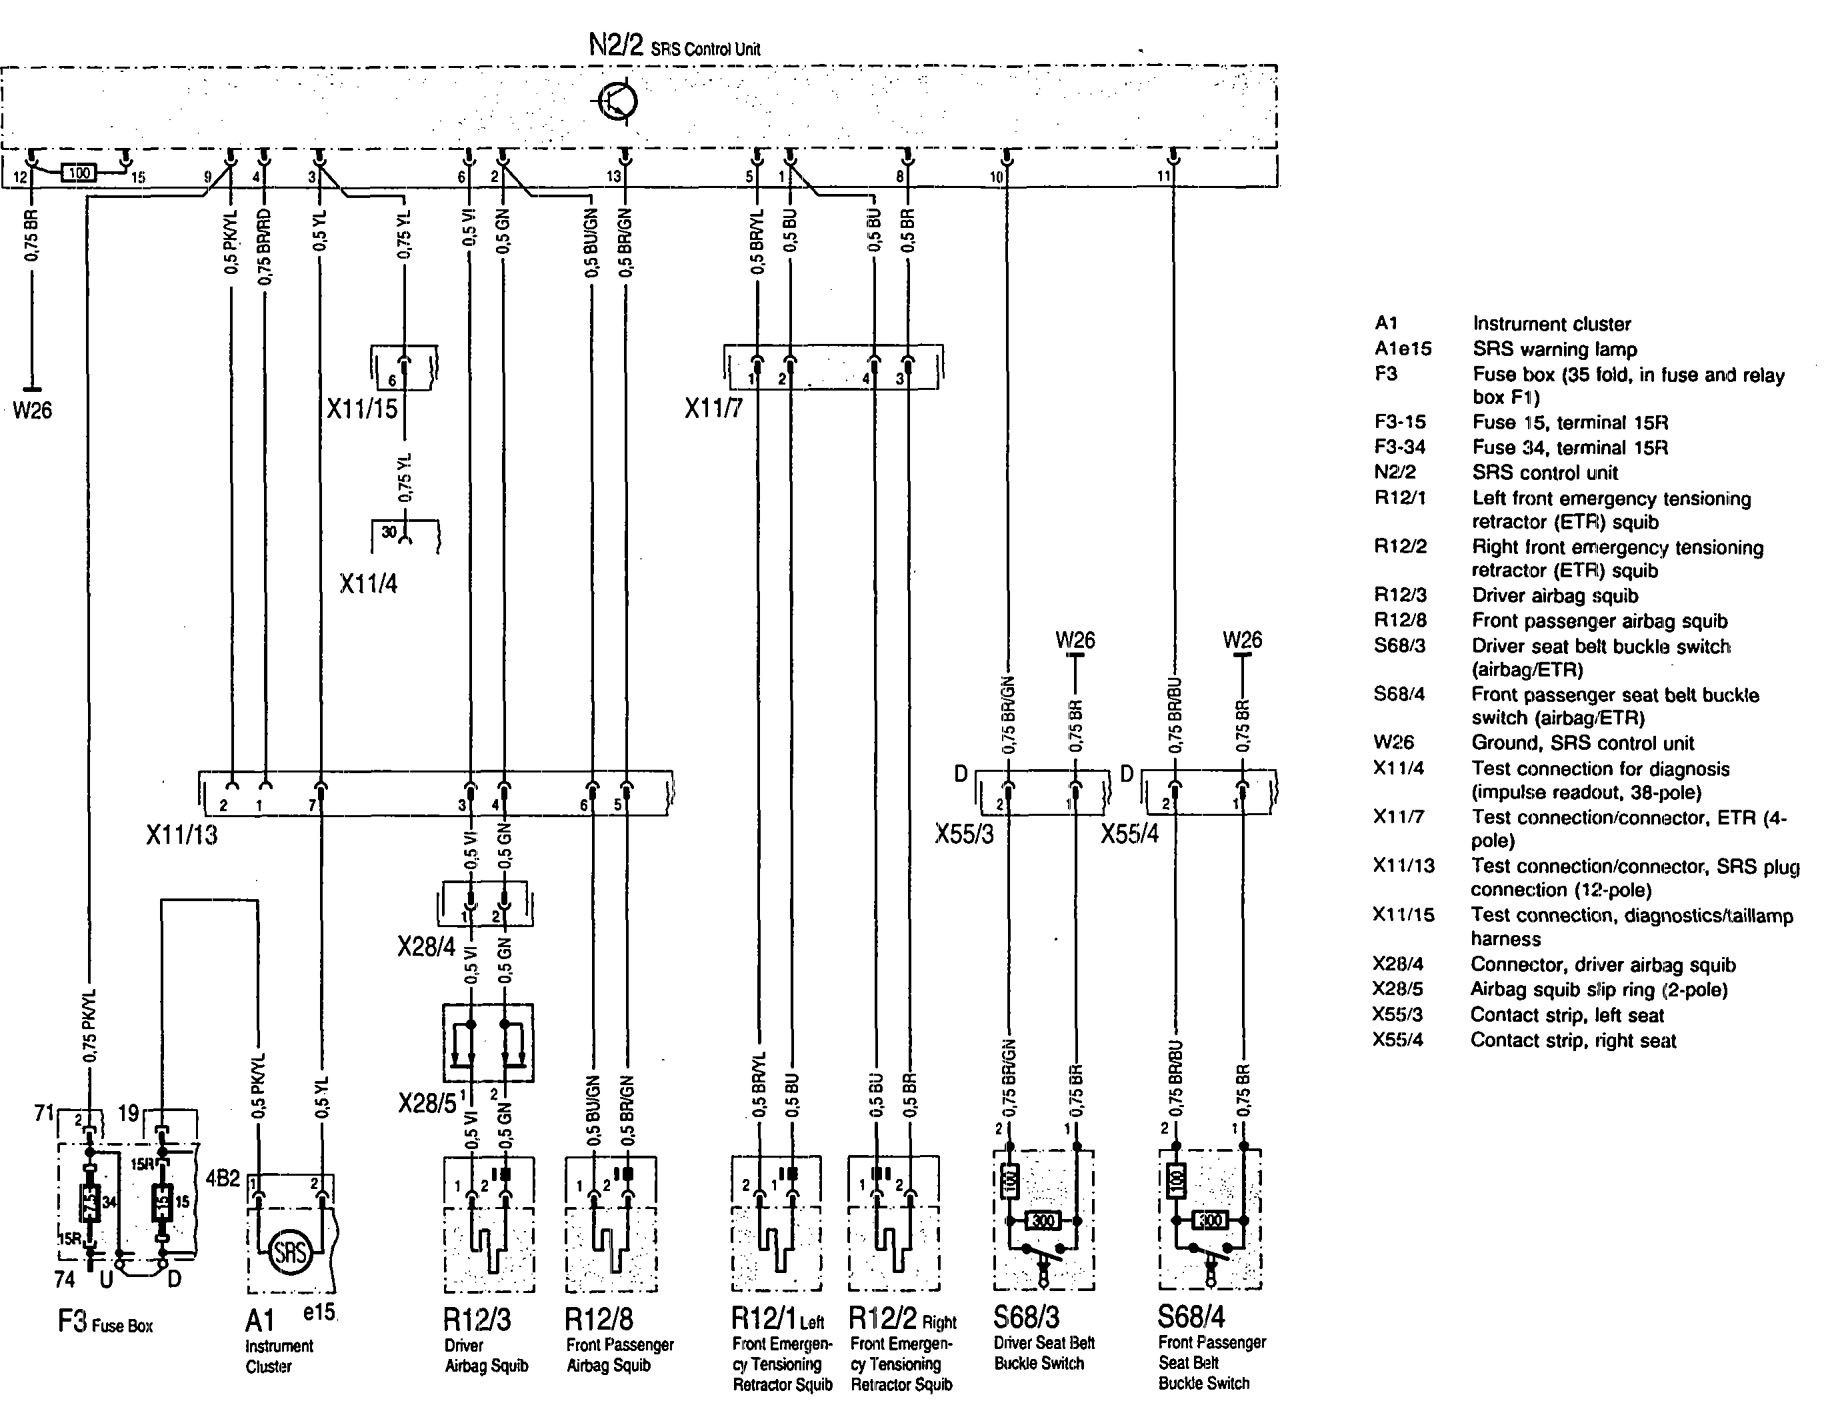 mercedes-benz 300sd (1993) - wiring diagrams - air bags - carknowledge.info  carknowledge.info